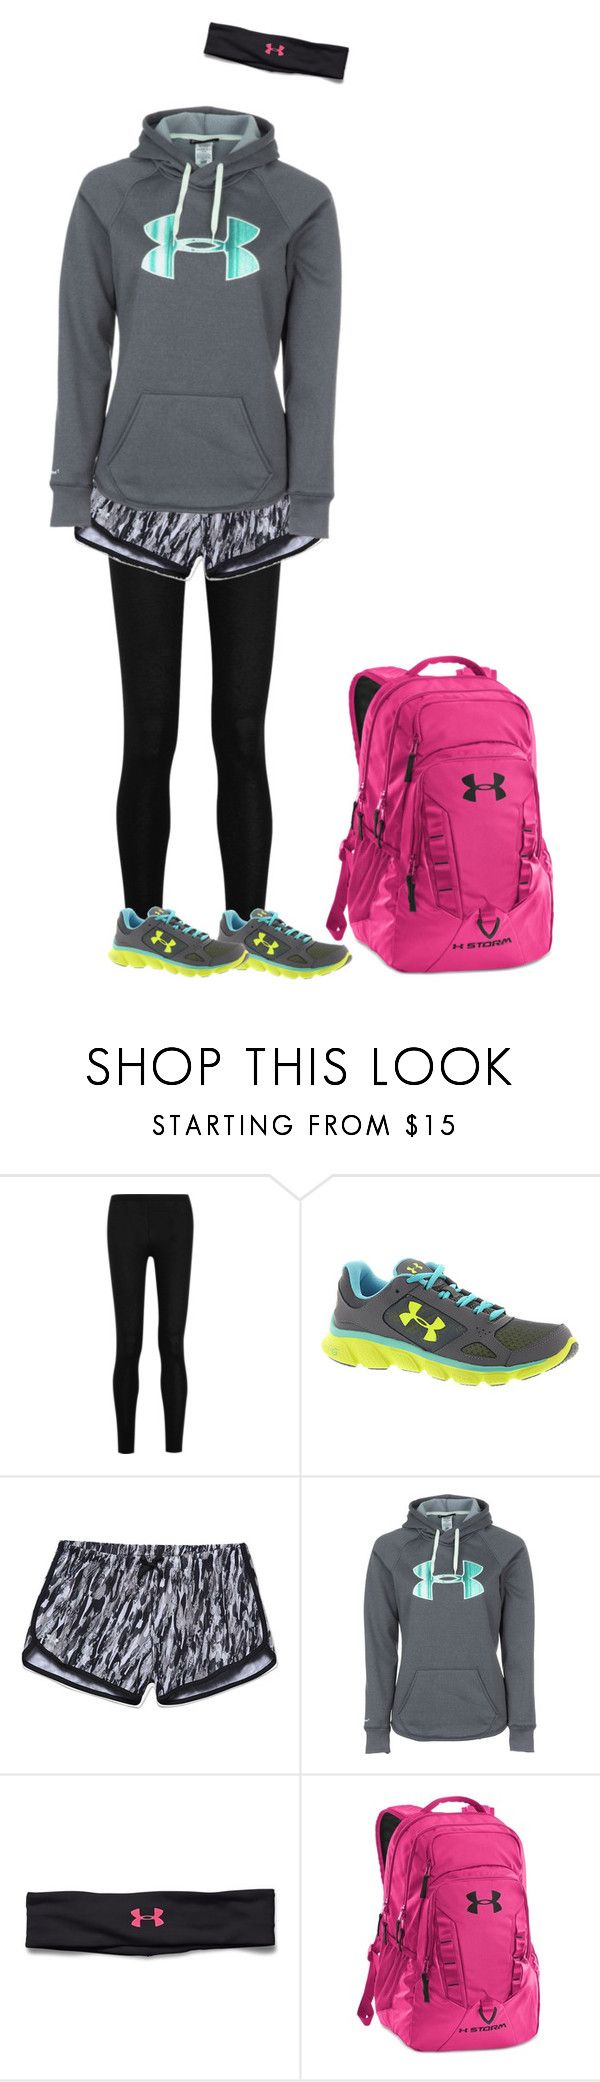 """under armer outfit"" by katherineedykes on Polyvore featuring Donna Karan, Under Armour, women's clothing, women, female, woman, misses and juniors"